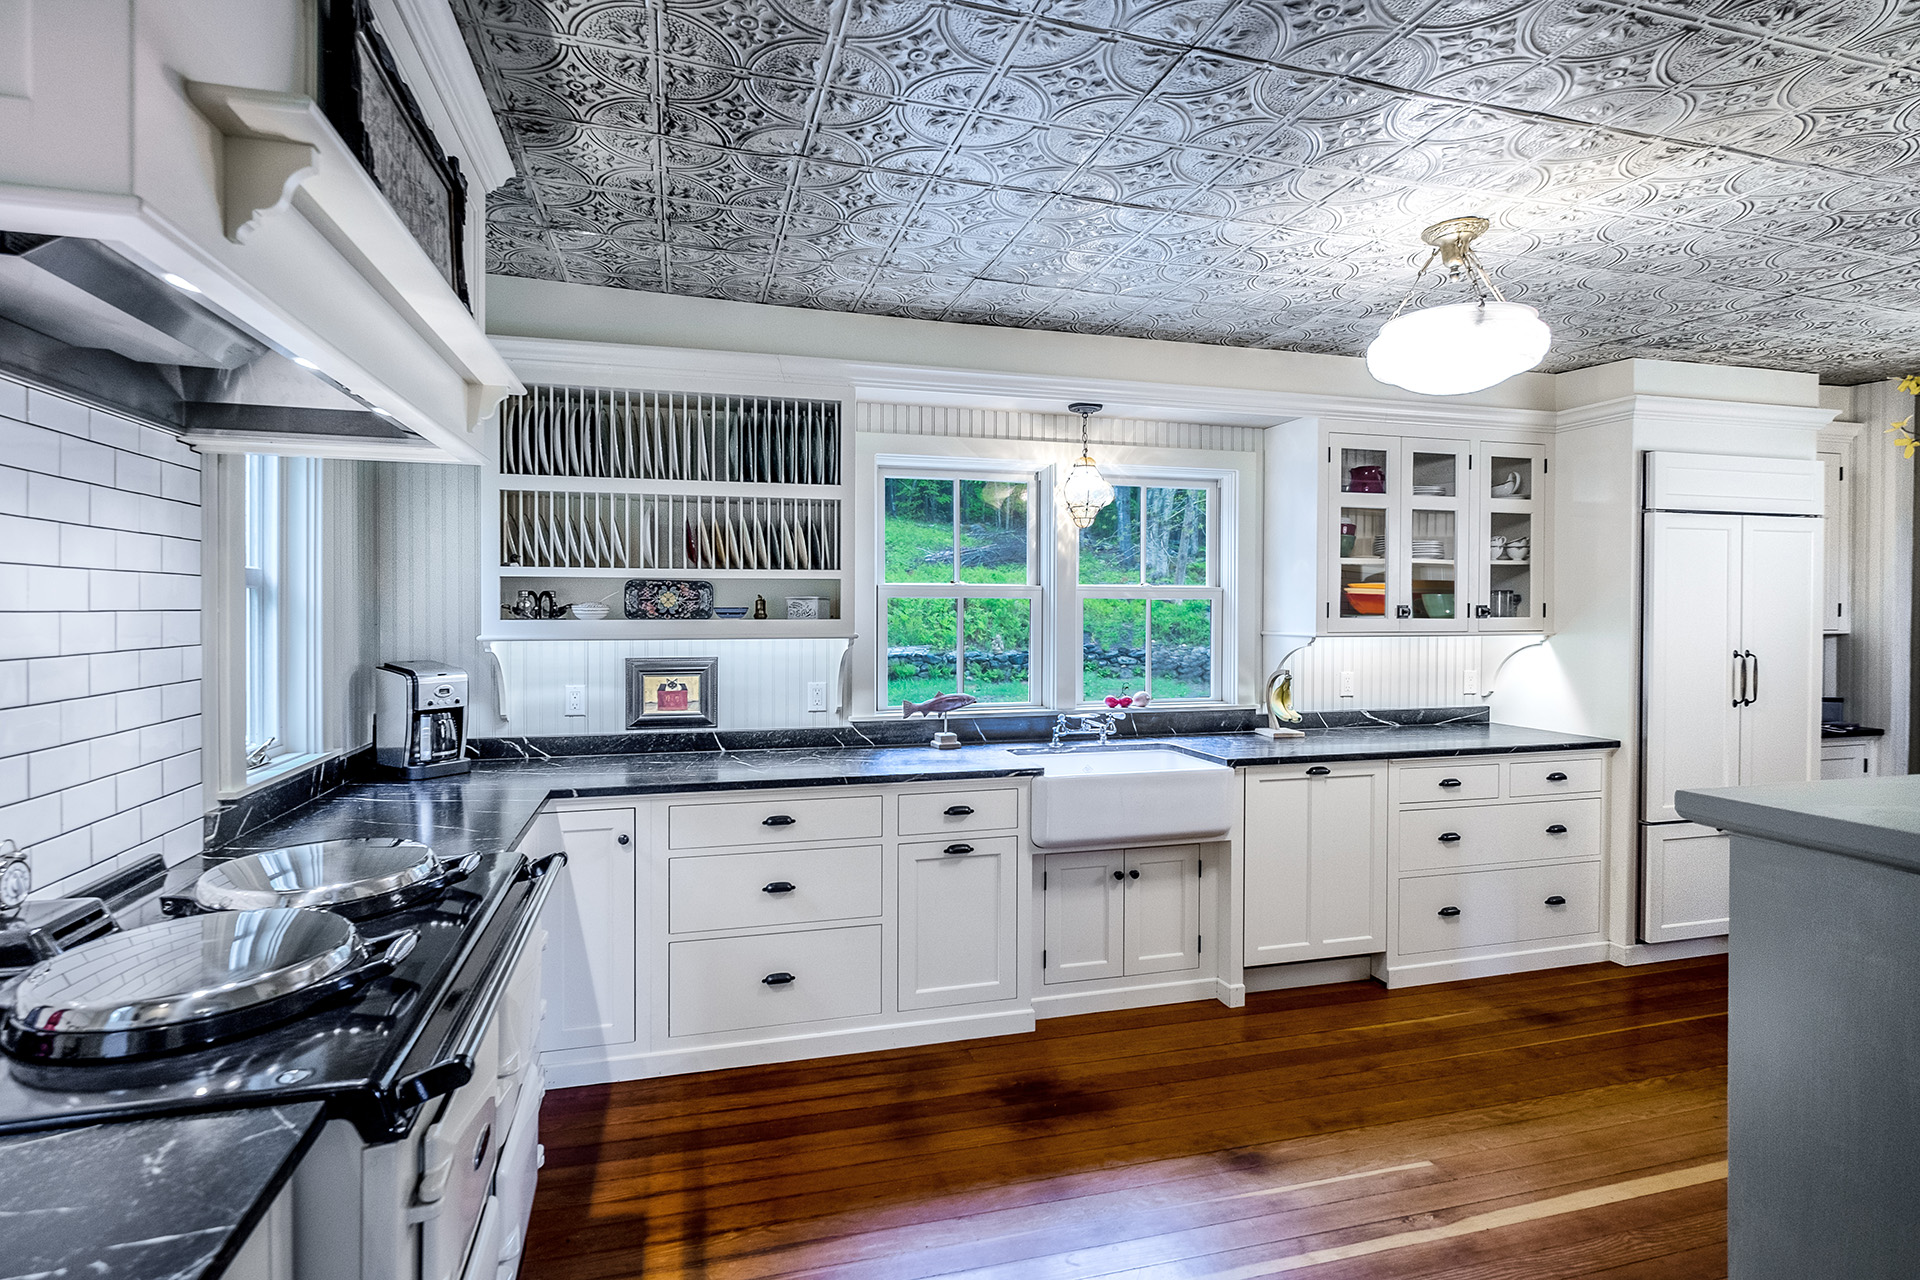 gorgeous kitchen made and designed by Kennebec company